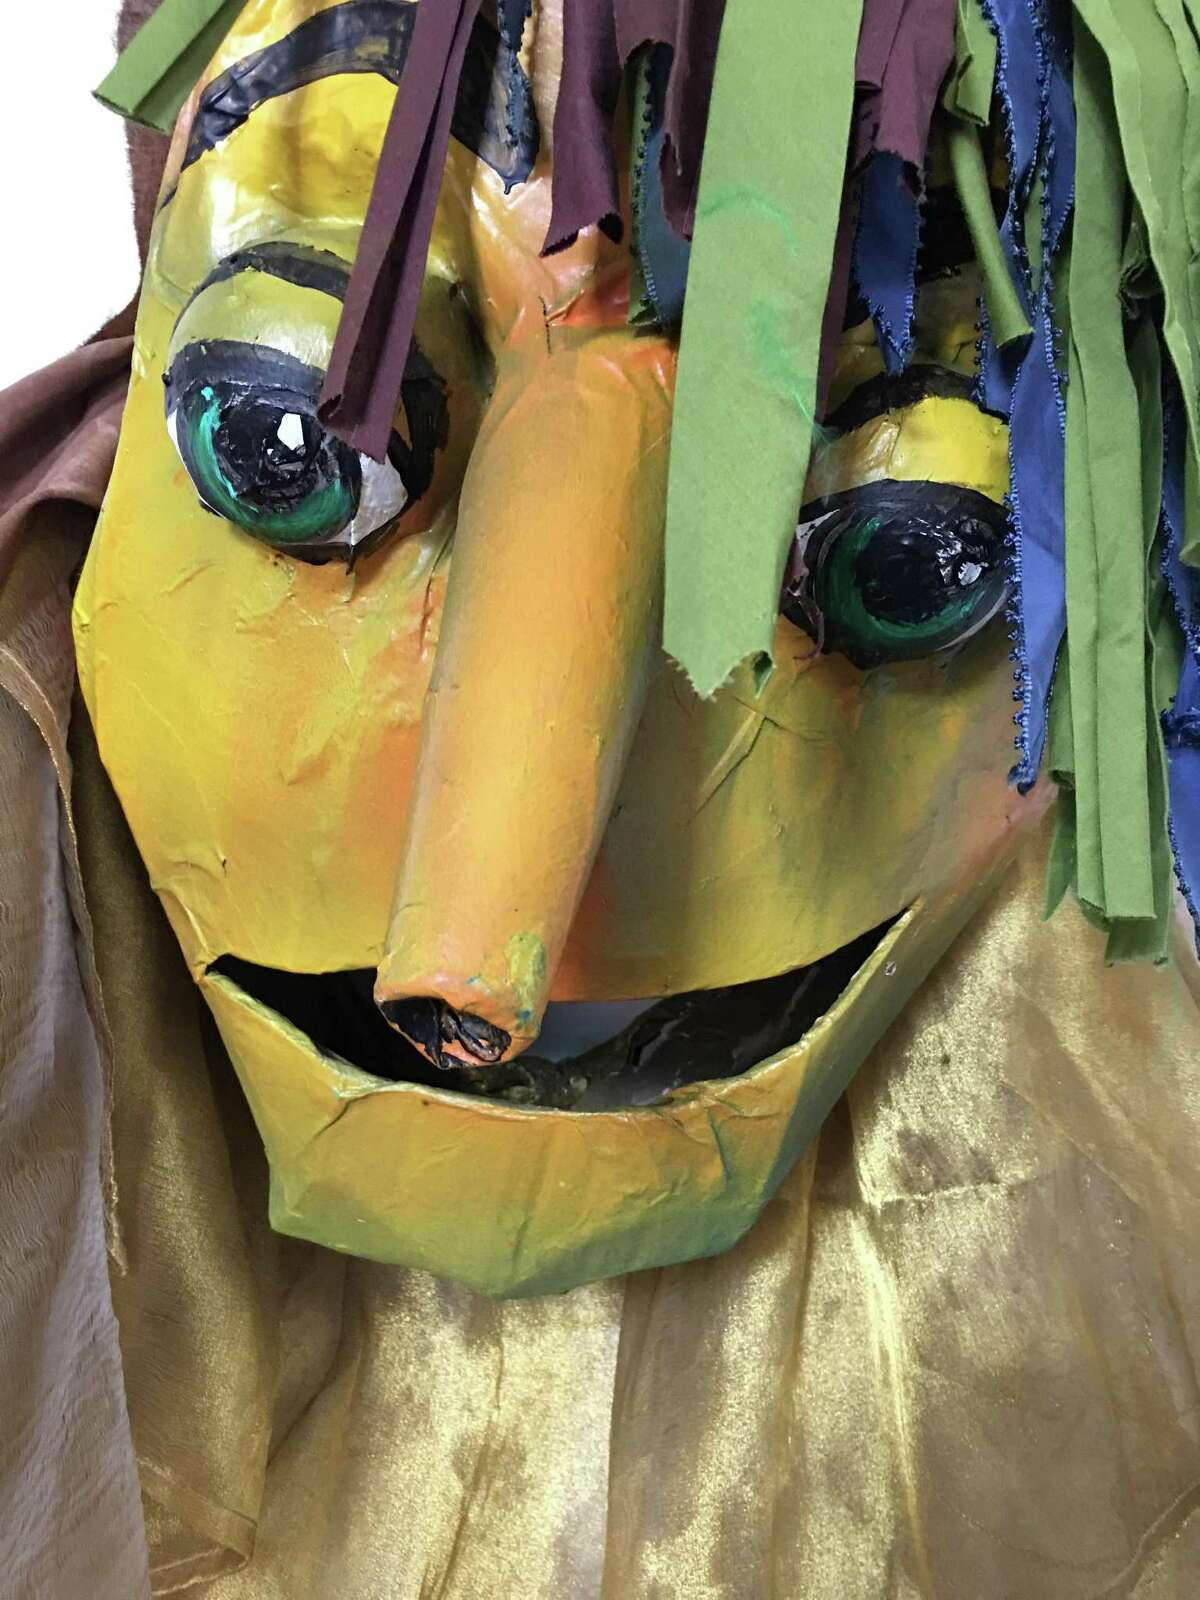 The 2017 Puppet Parade, part of the SoNo Arts Festival in Norwalk on Aug. 5 and 6, will feature all new puppets, including the one above.